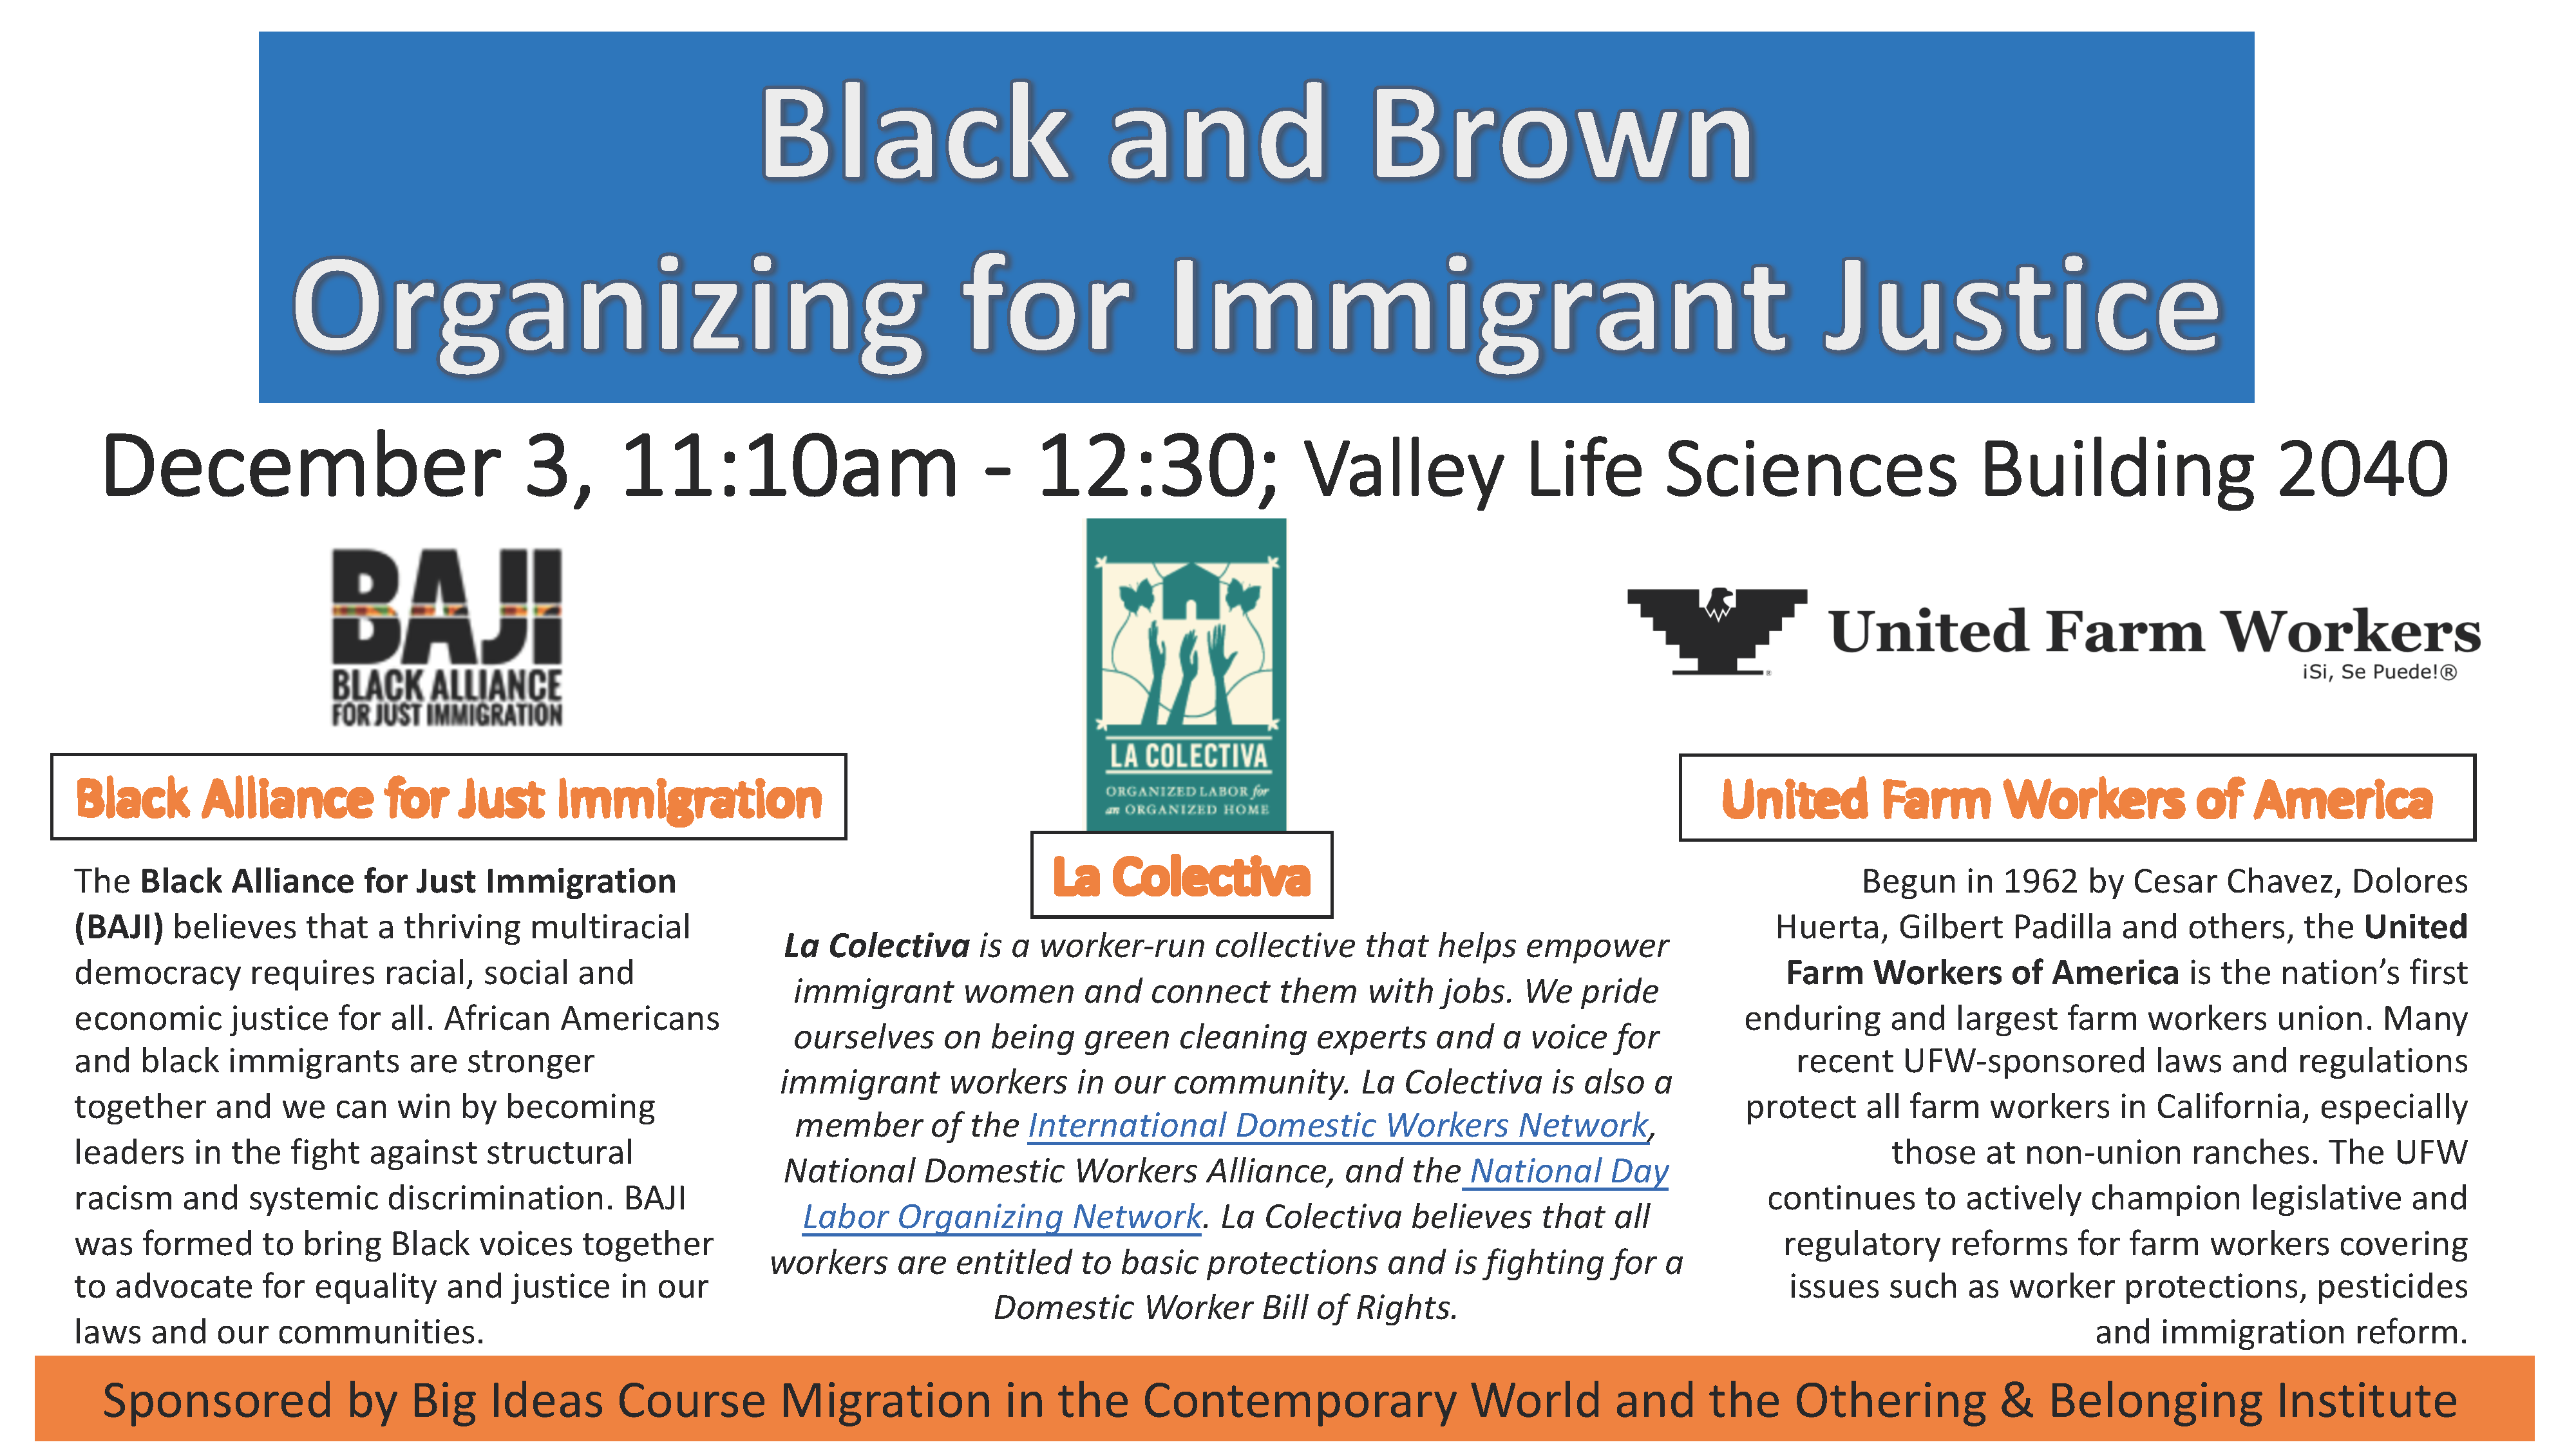 Flier for the Black and Brown Organizing for Immigrant Justice event